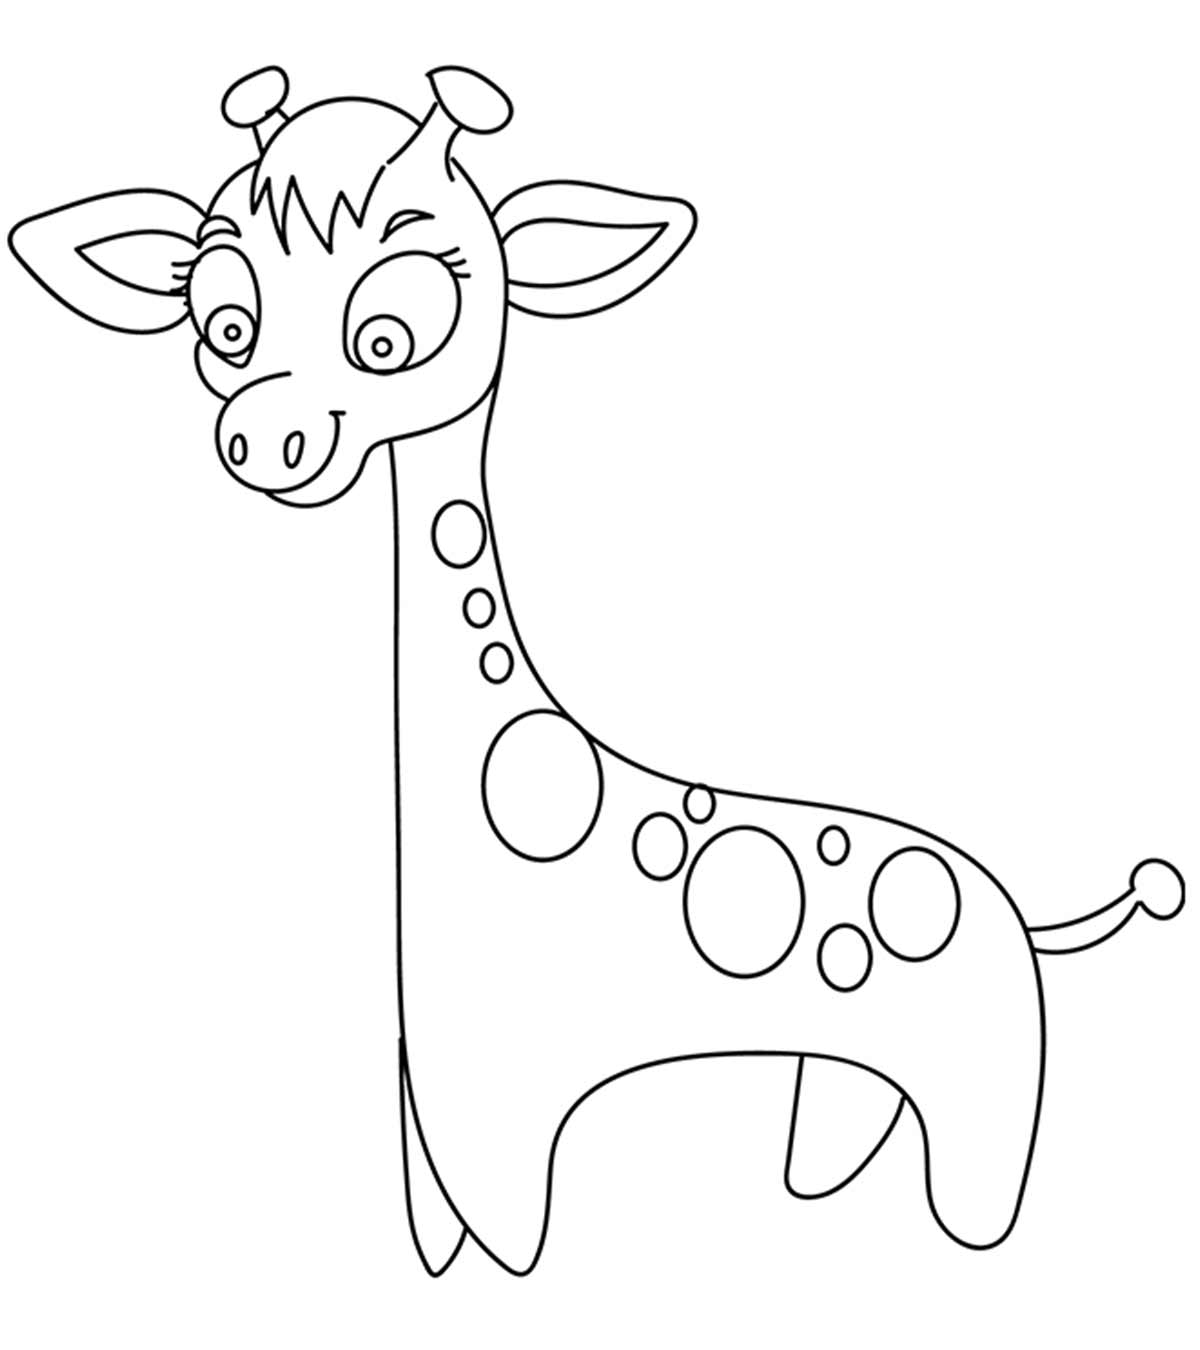 cute giraffe coloring pages print download giraffe coloring pages for kids to have fun giraffe cute coloring pages